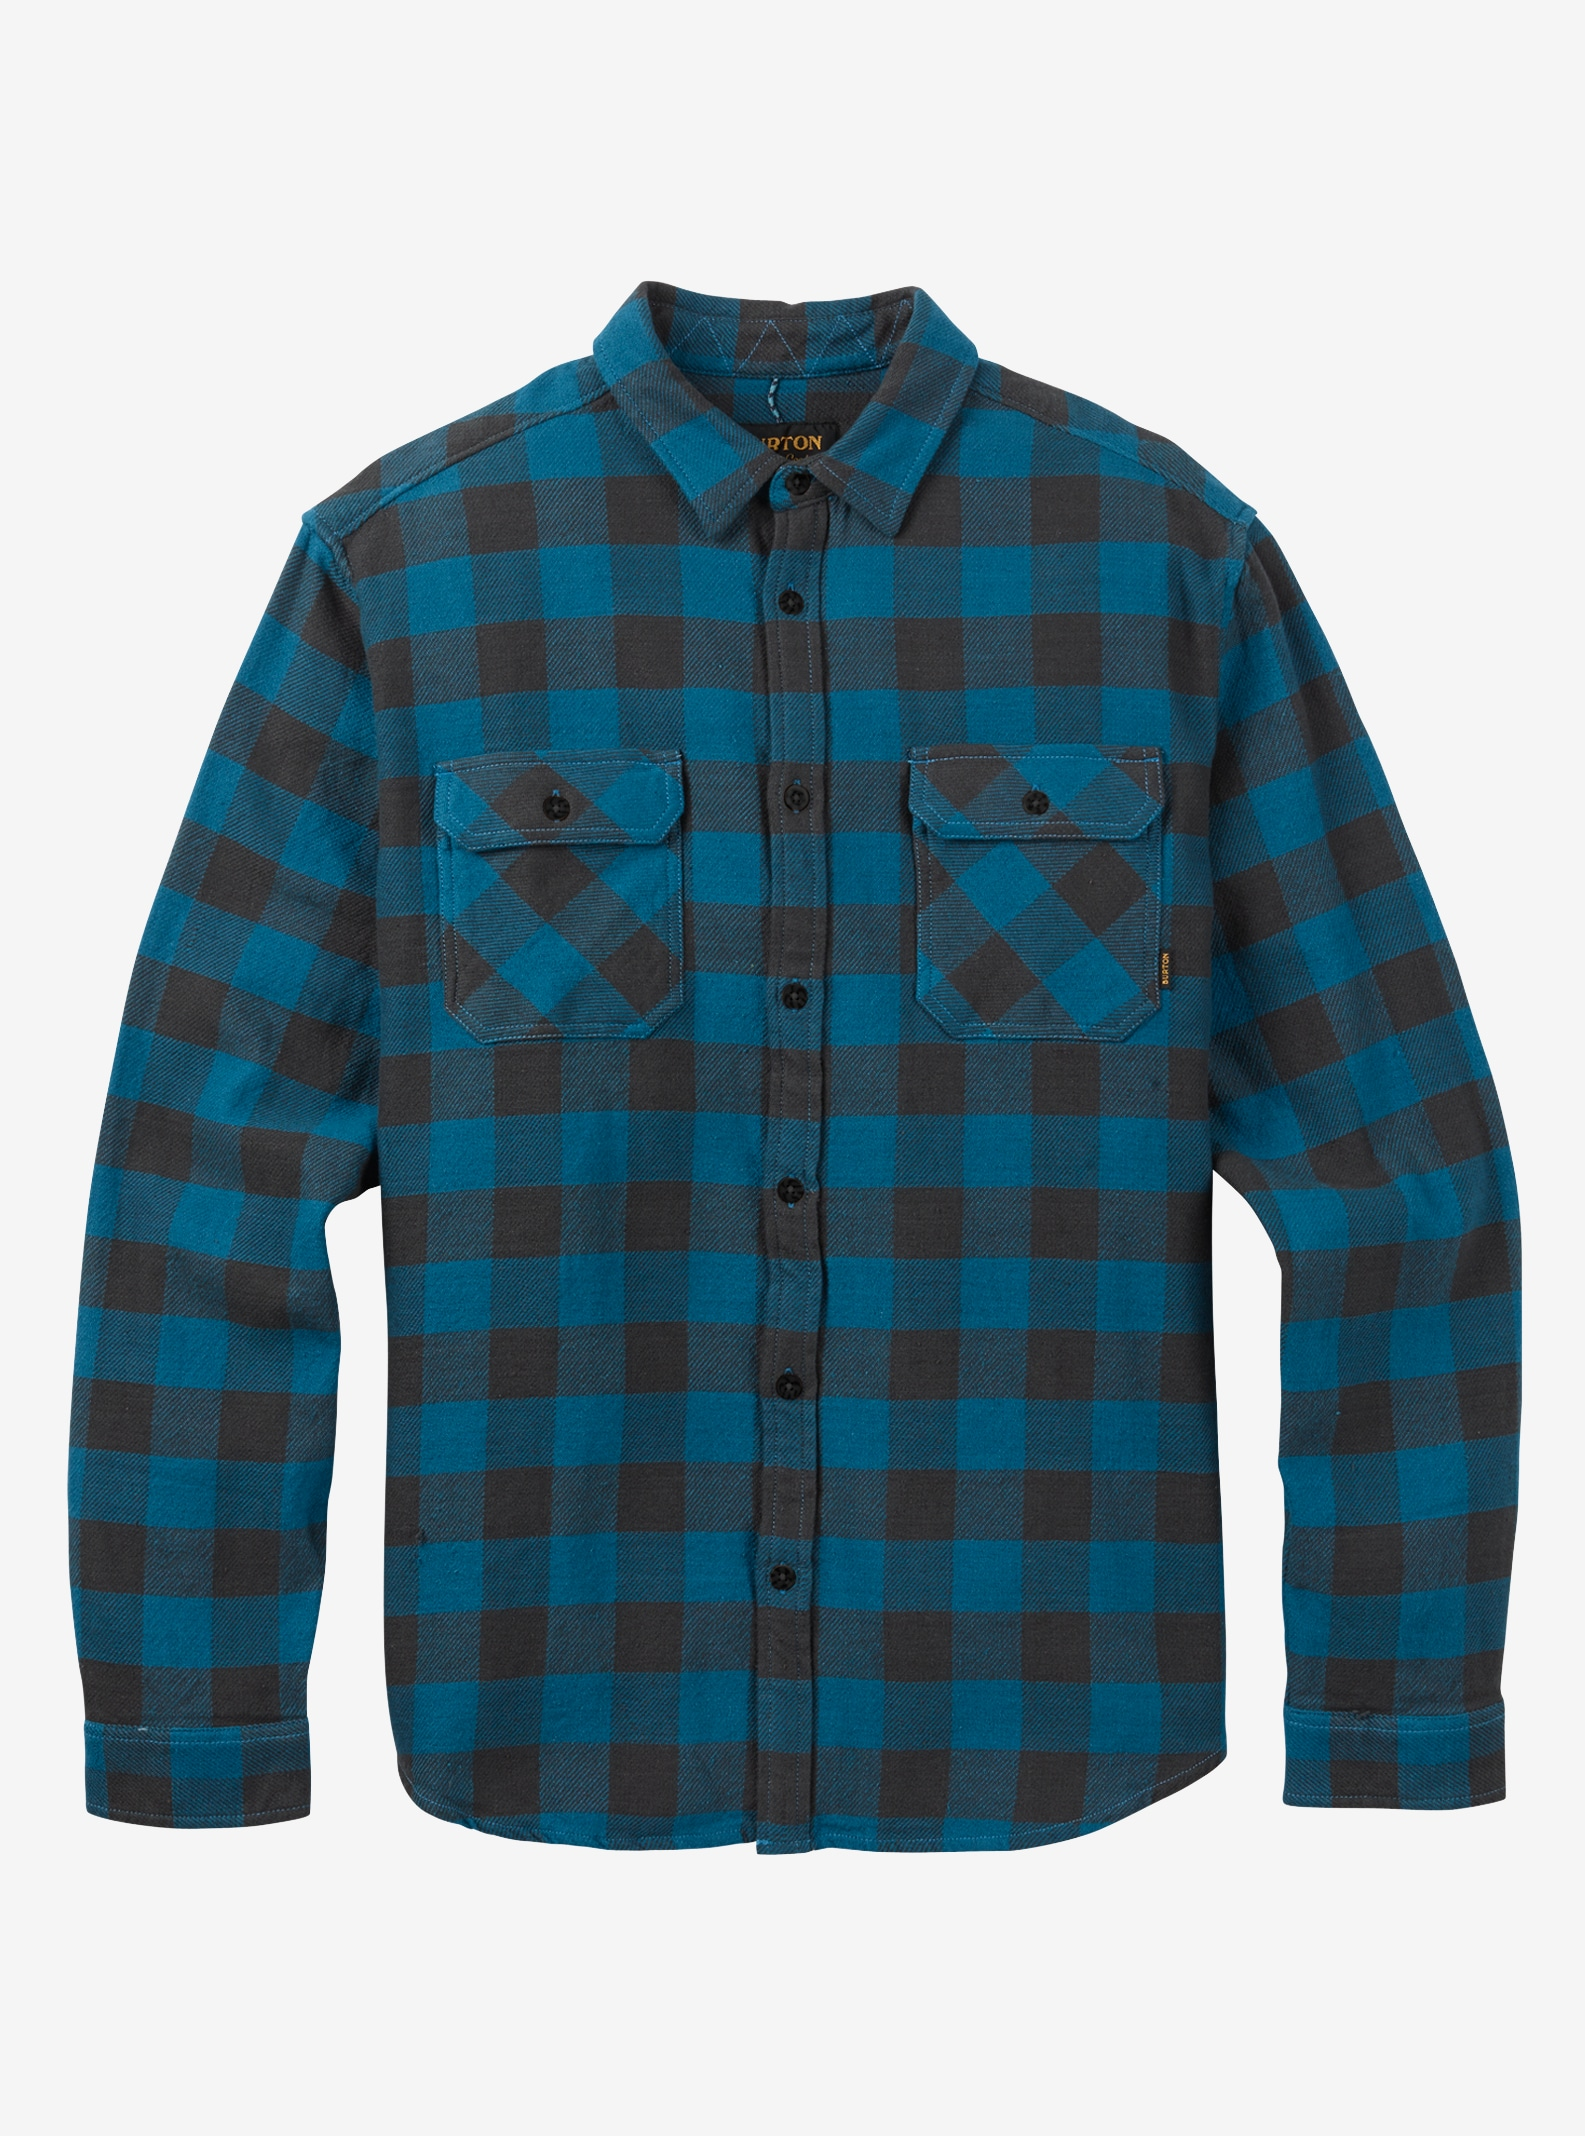 Men's Burton Brighton Burly Flannel shown in Mountaineer Buffalo Plaid